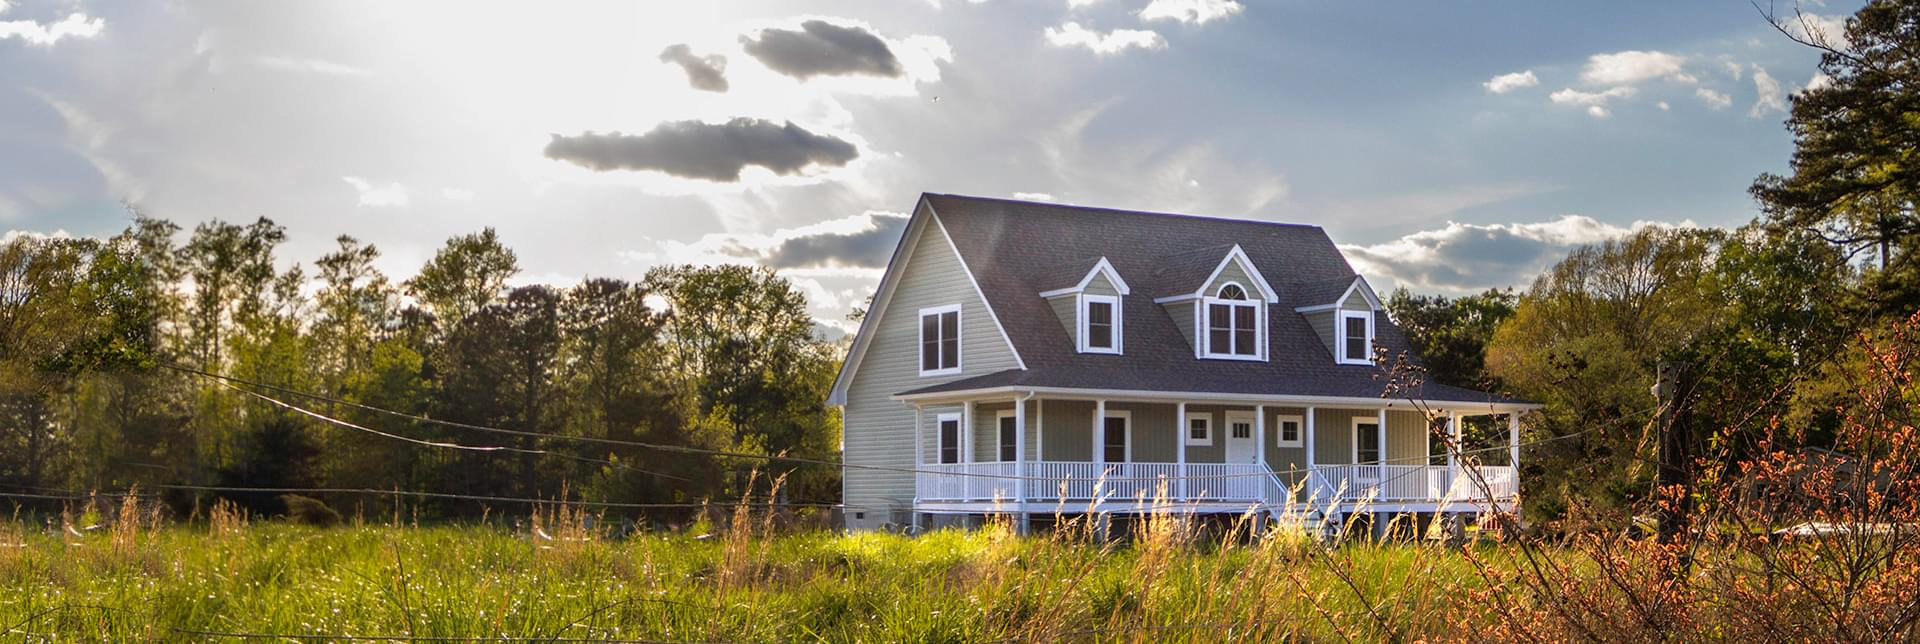 New Homes in Surry County VA